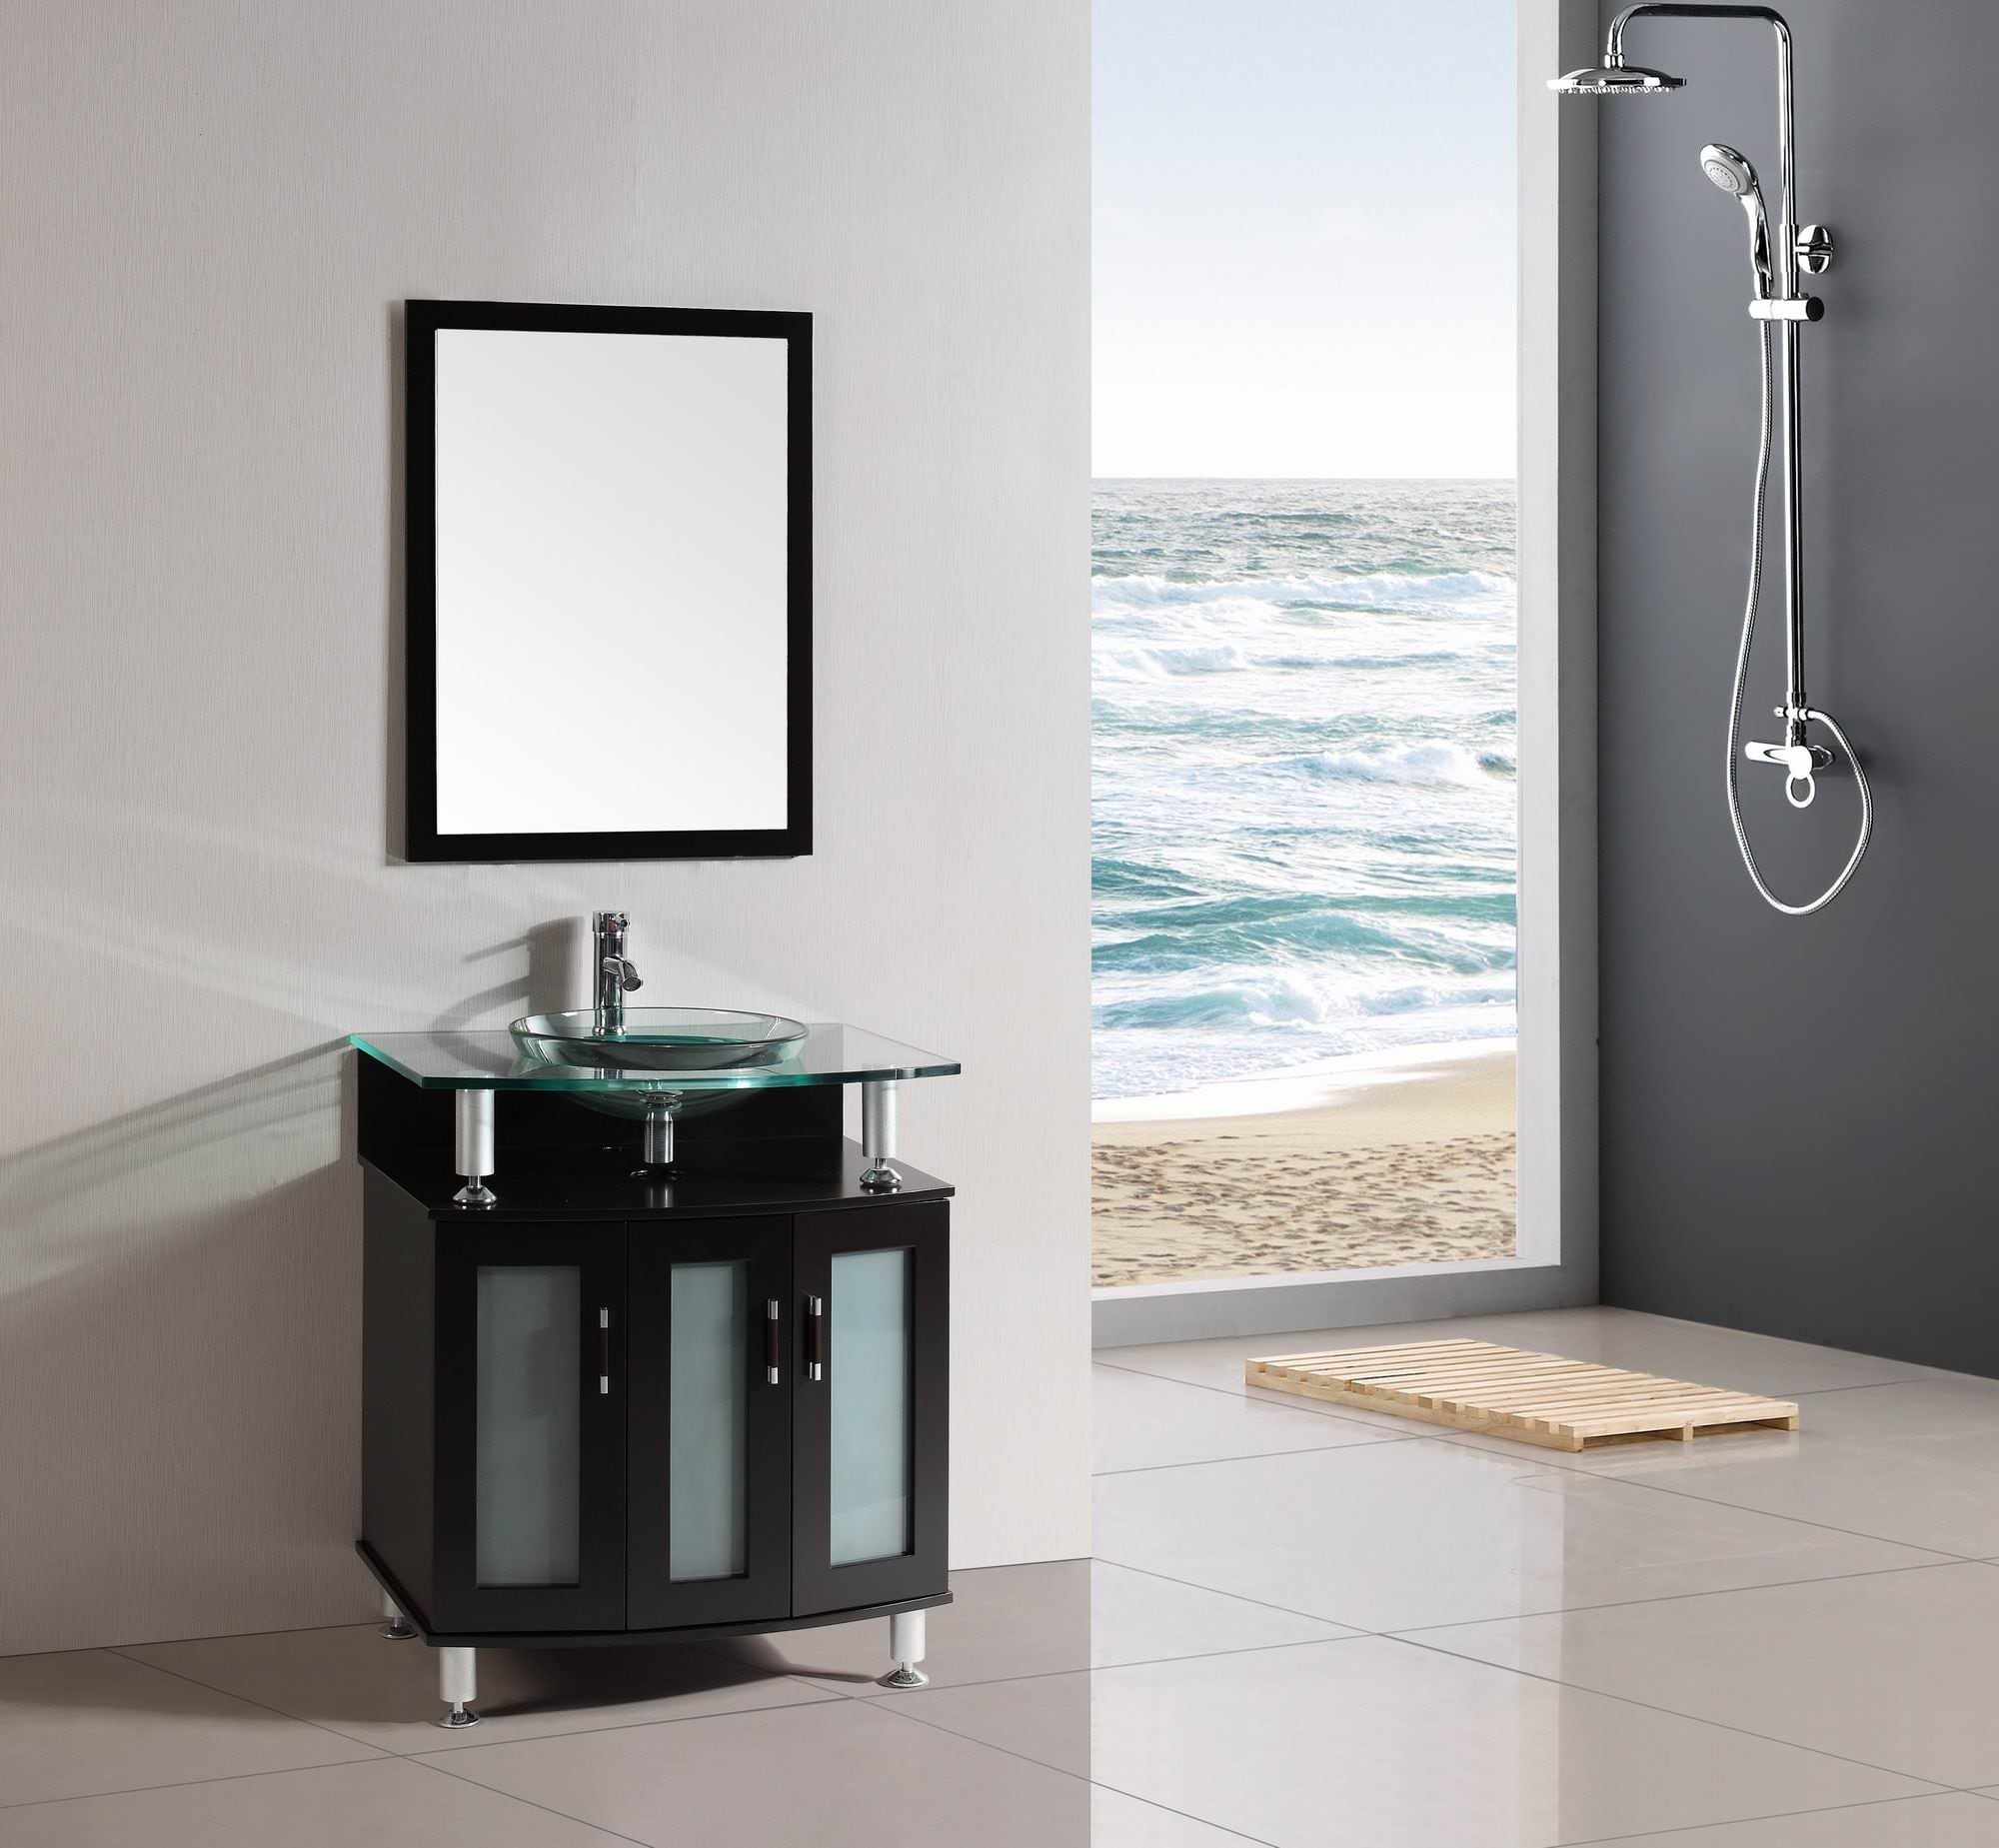 Sets bathroom vanity ari kitchen second - 30 Inch Belvedere Modern Espresso Bathroom Vanity With Tempered Glass Top And Basin